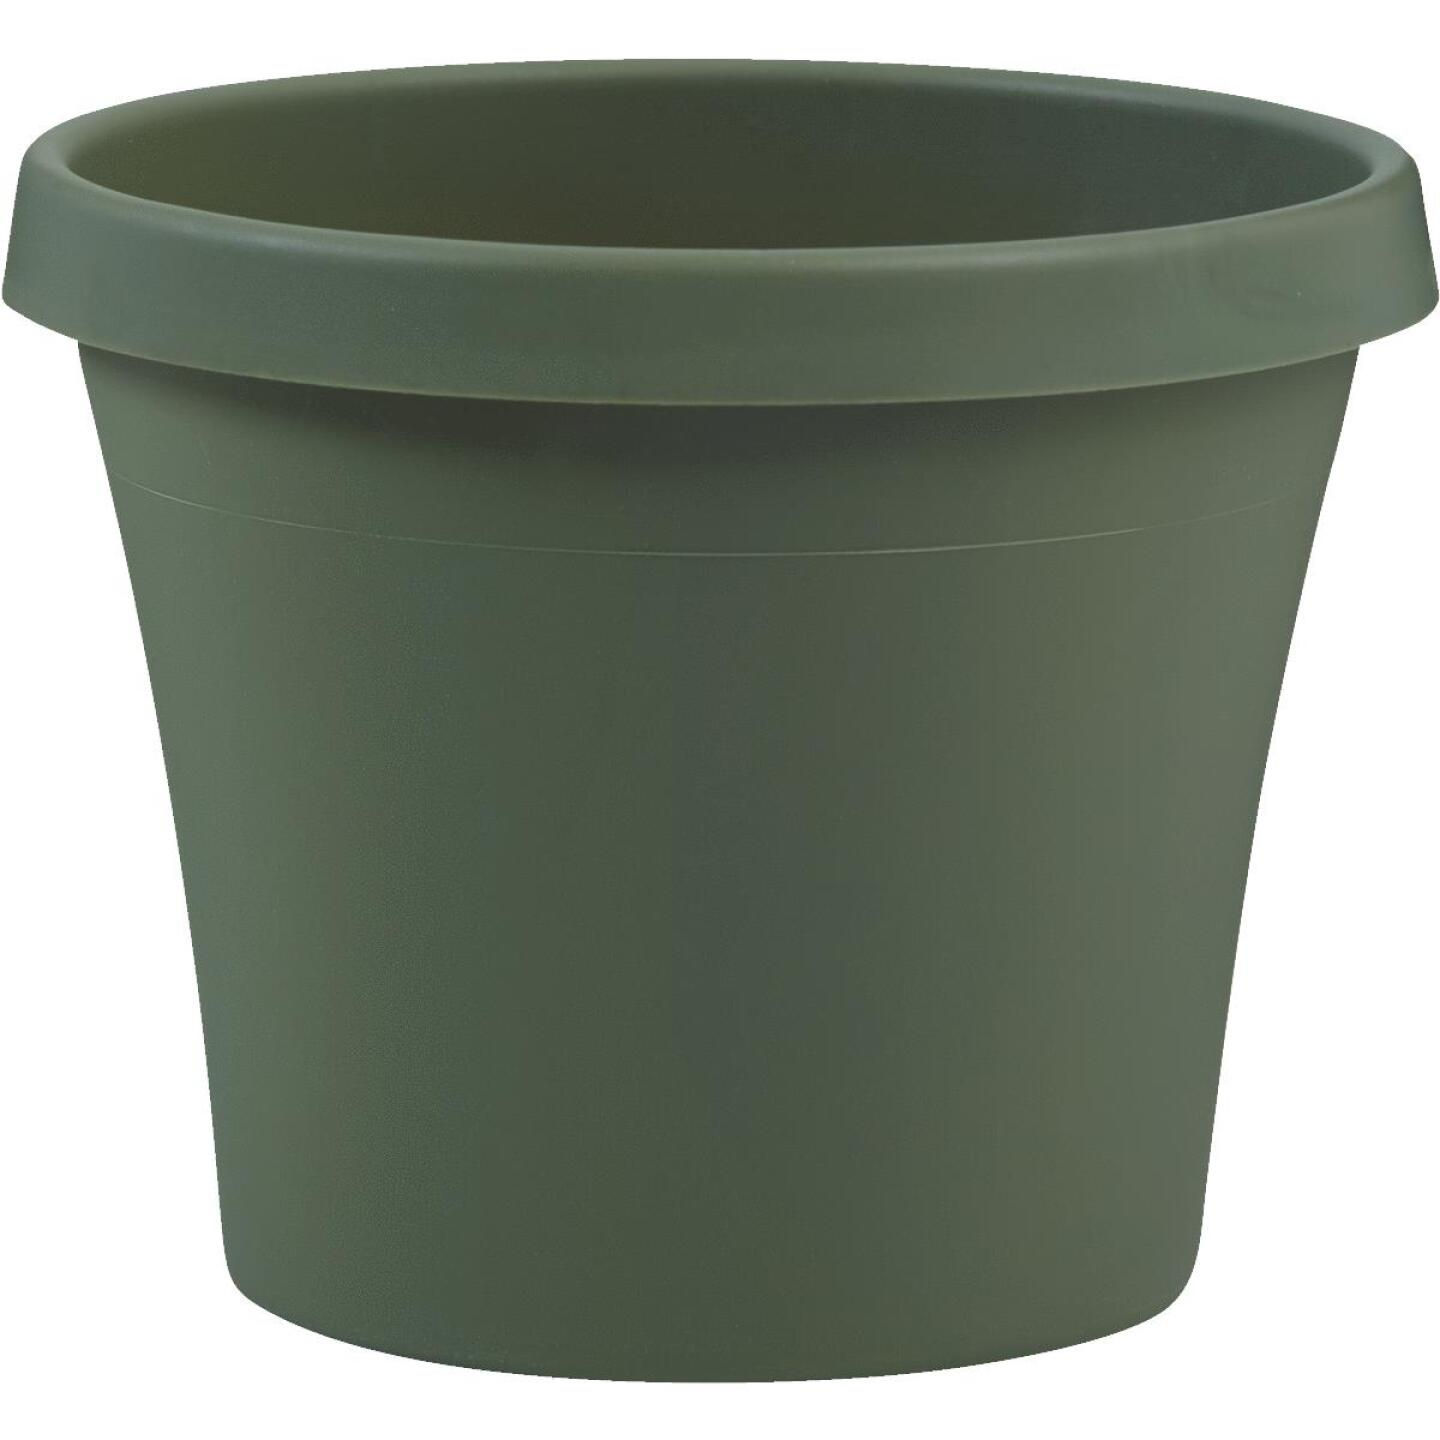 Bloem Terra Living Green 7.25 In. H. x 8 In. Dia. Polypropylene Planter Image 1